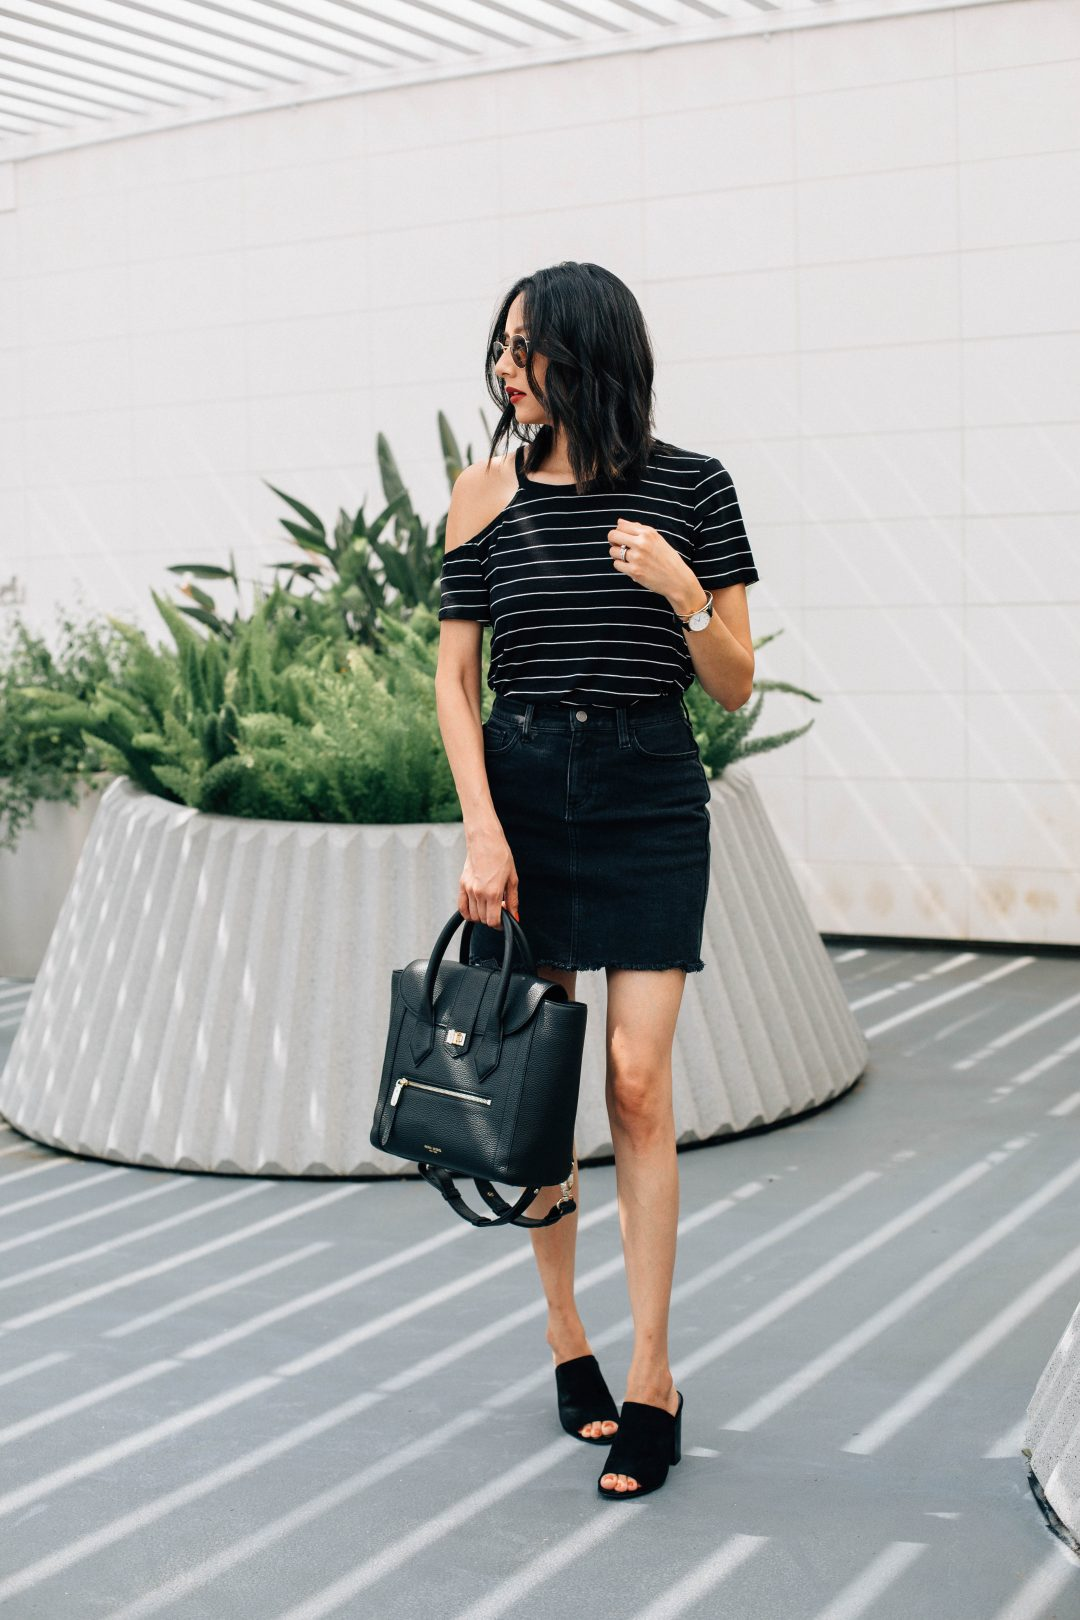 Houston fashion blogger Lilly Beltran styles a black denim mini skirt for an effortless chic date night look